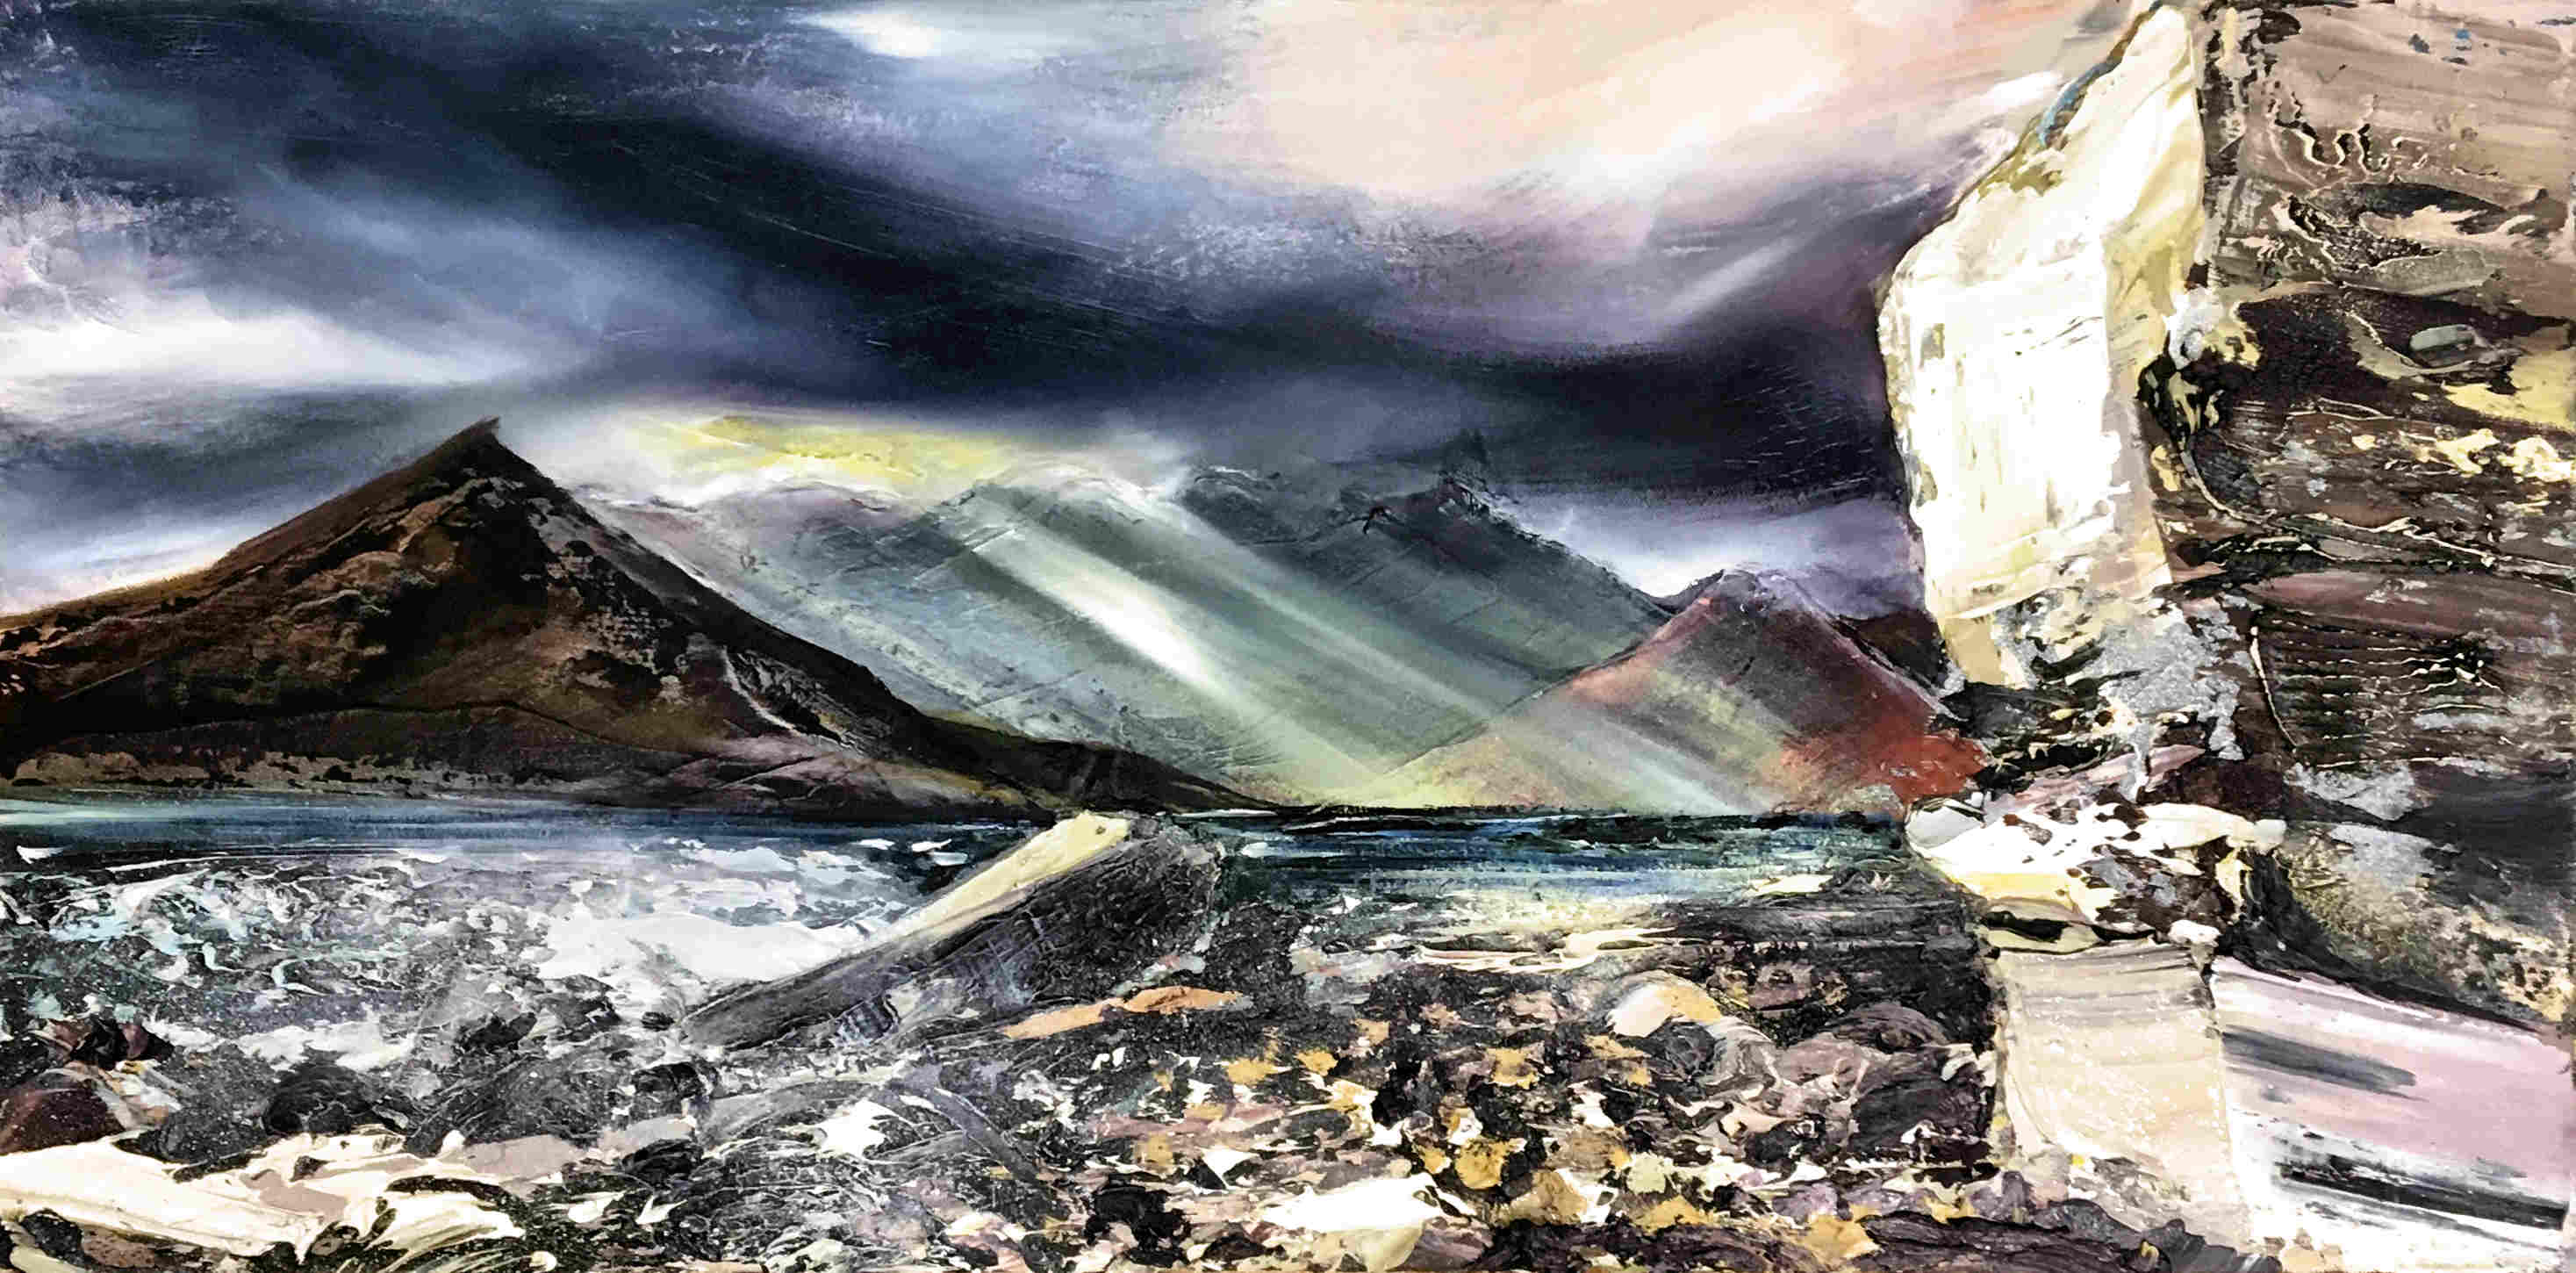 'Elgol' by artist Shazia Mahmood